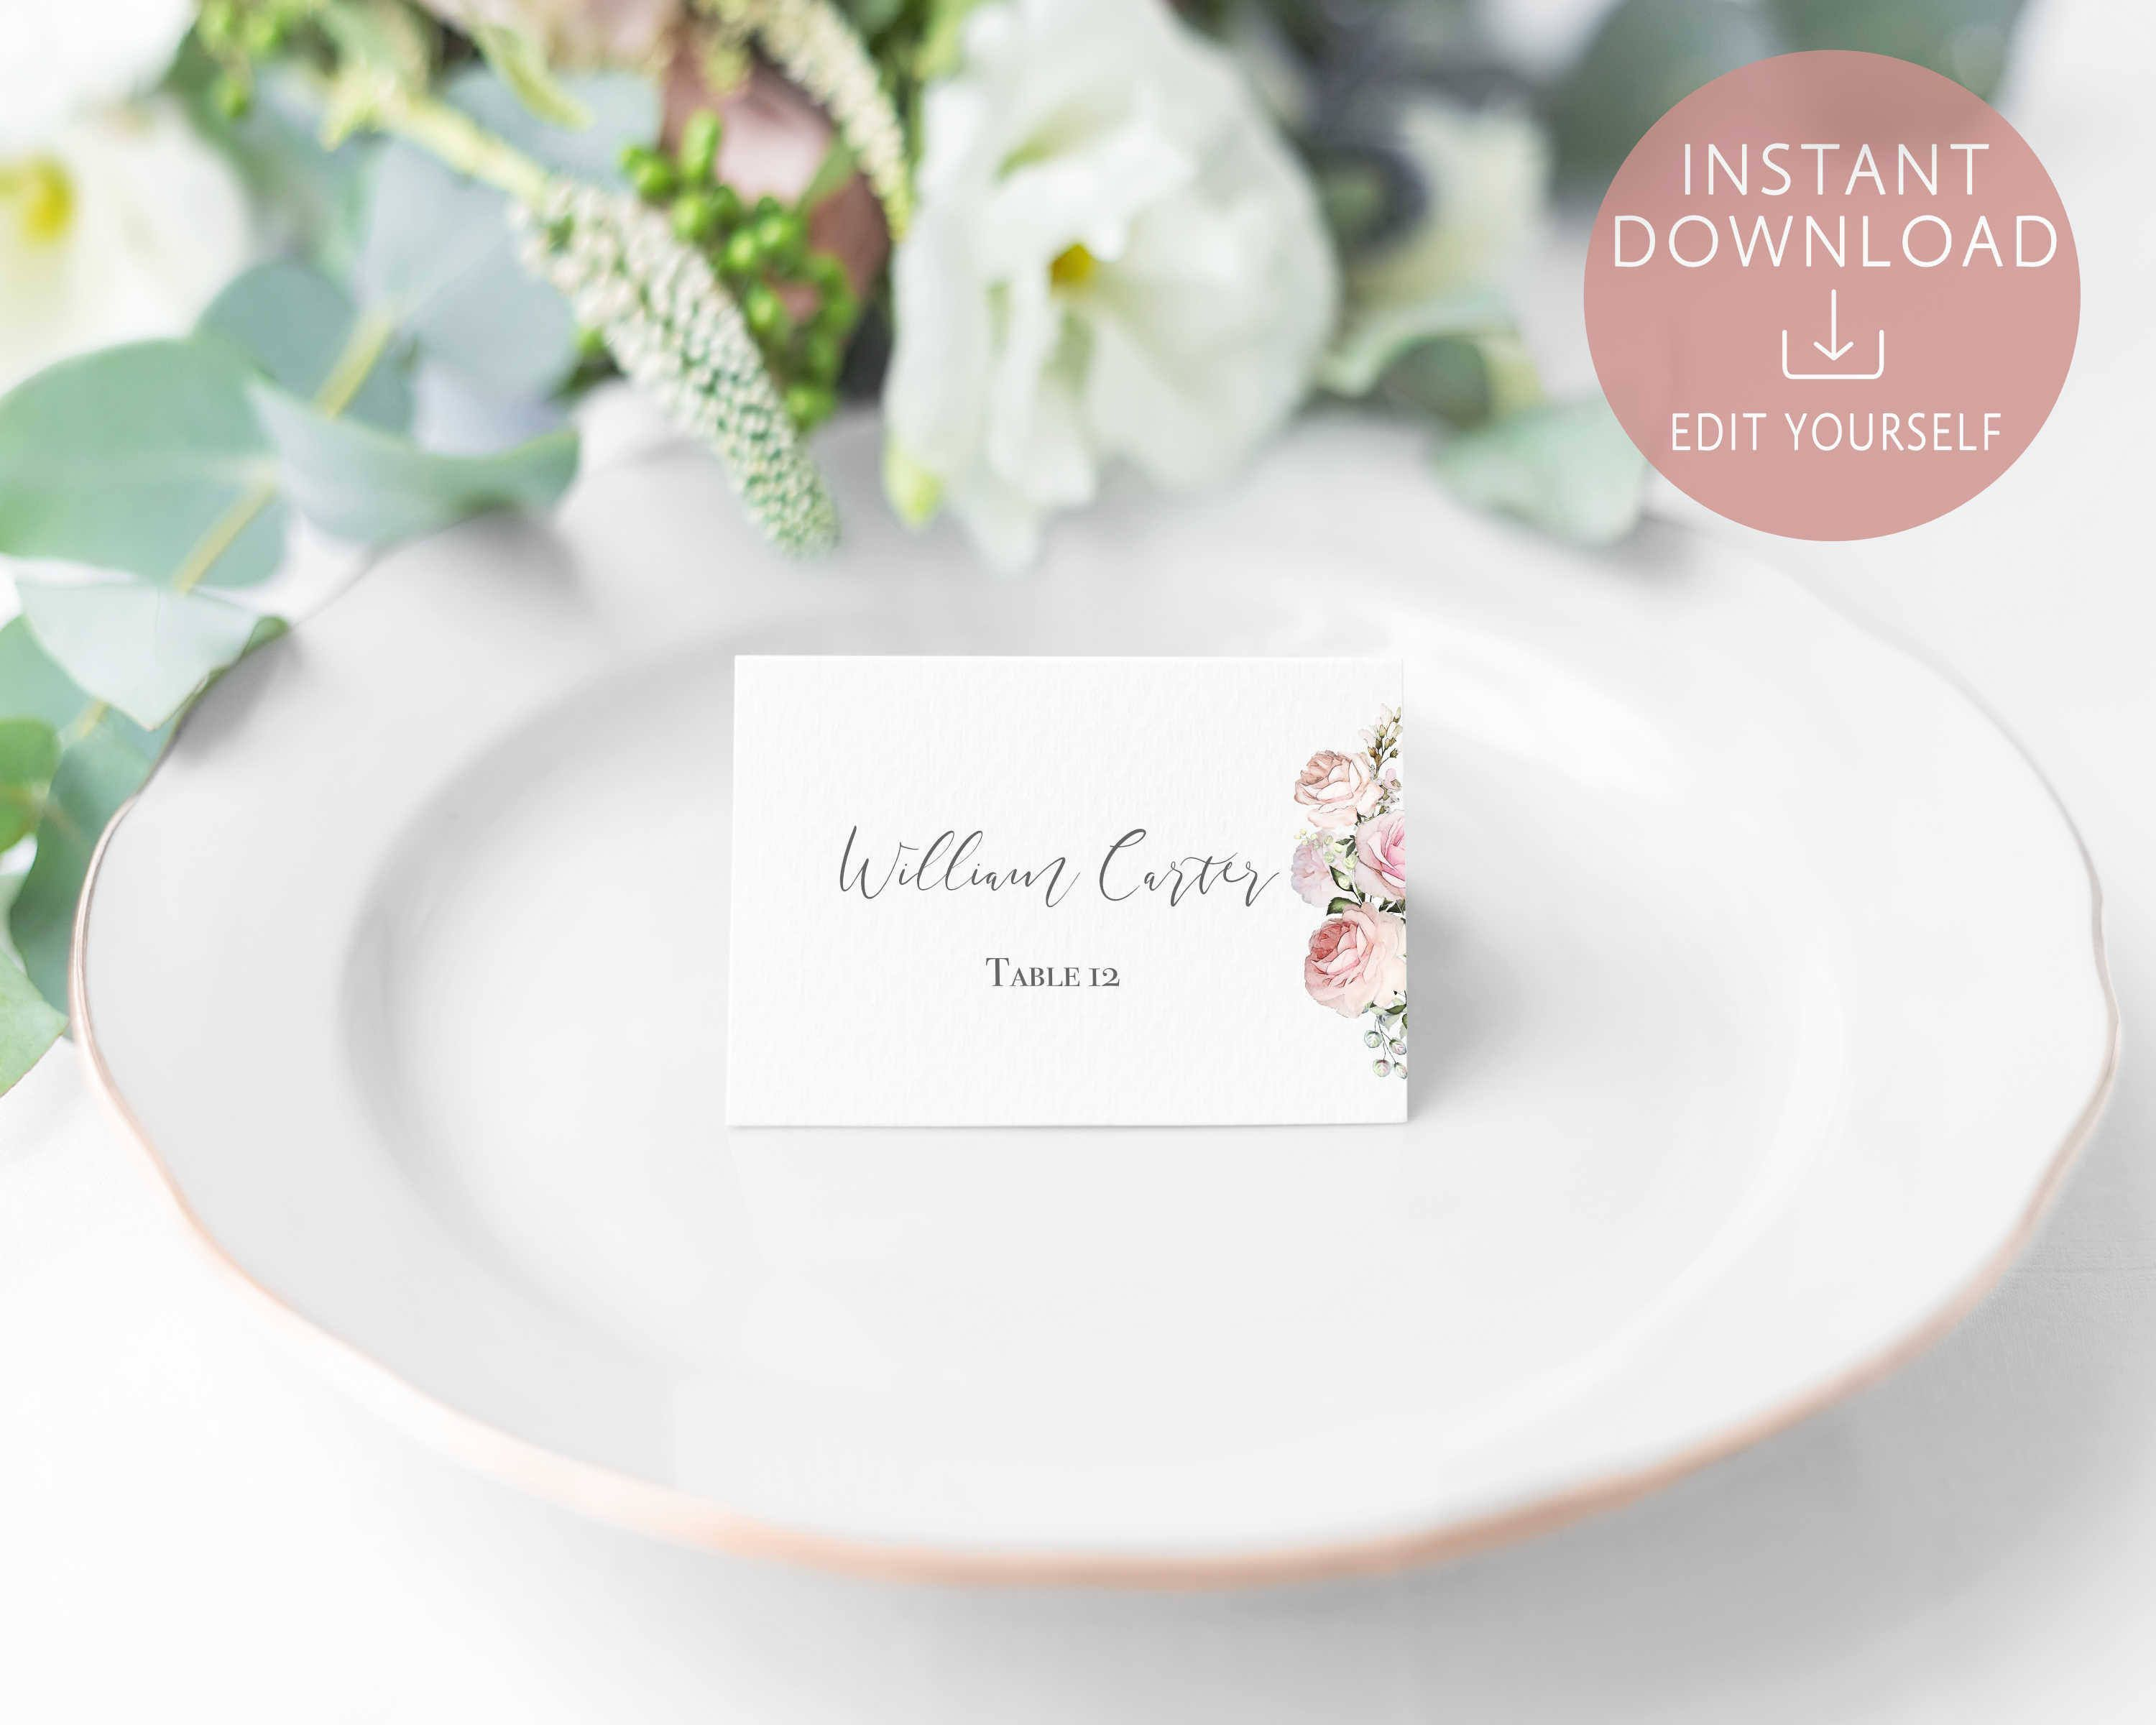 004 Beautiful Name Place Card Template Free Download High Definition  Psd VectorFull